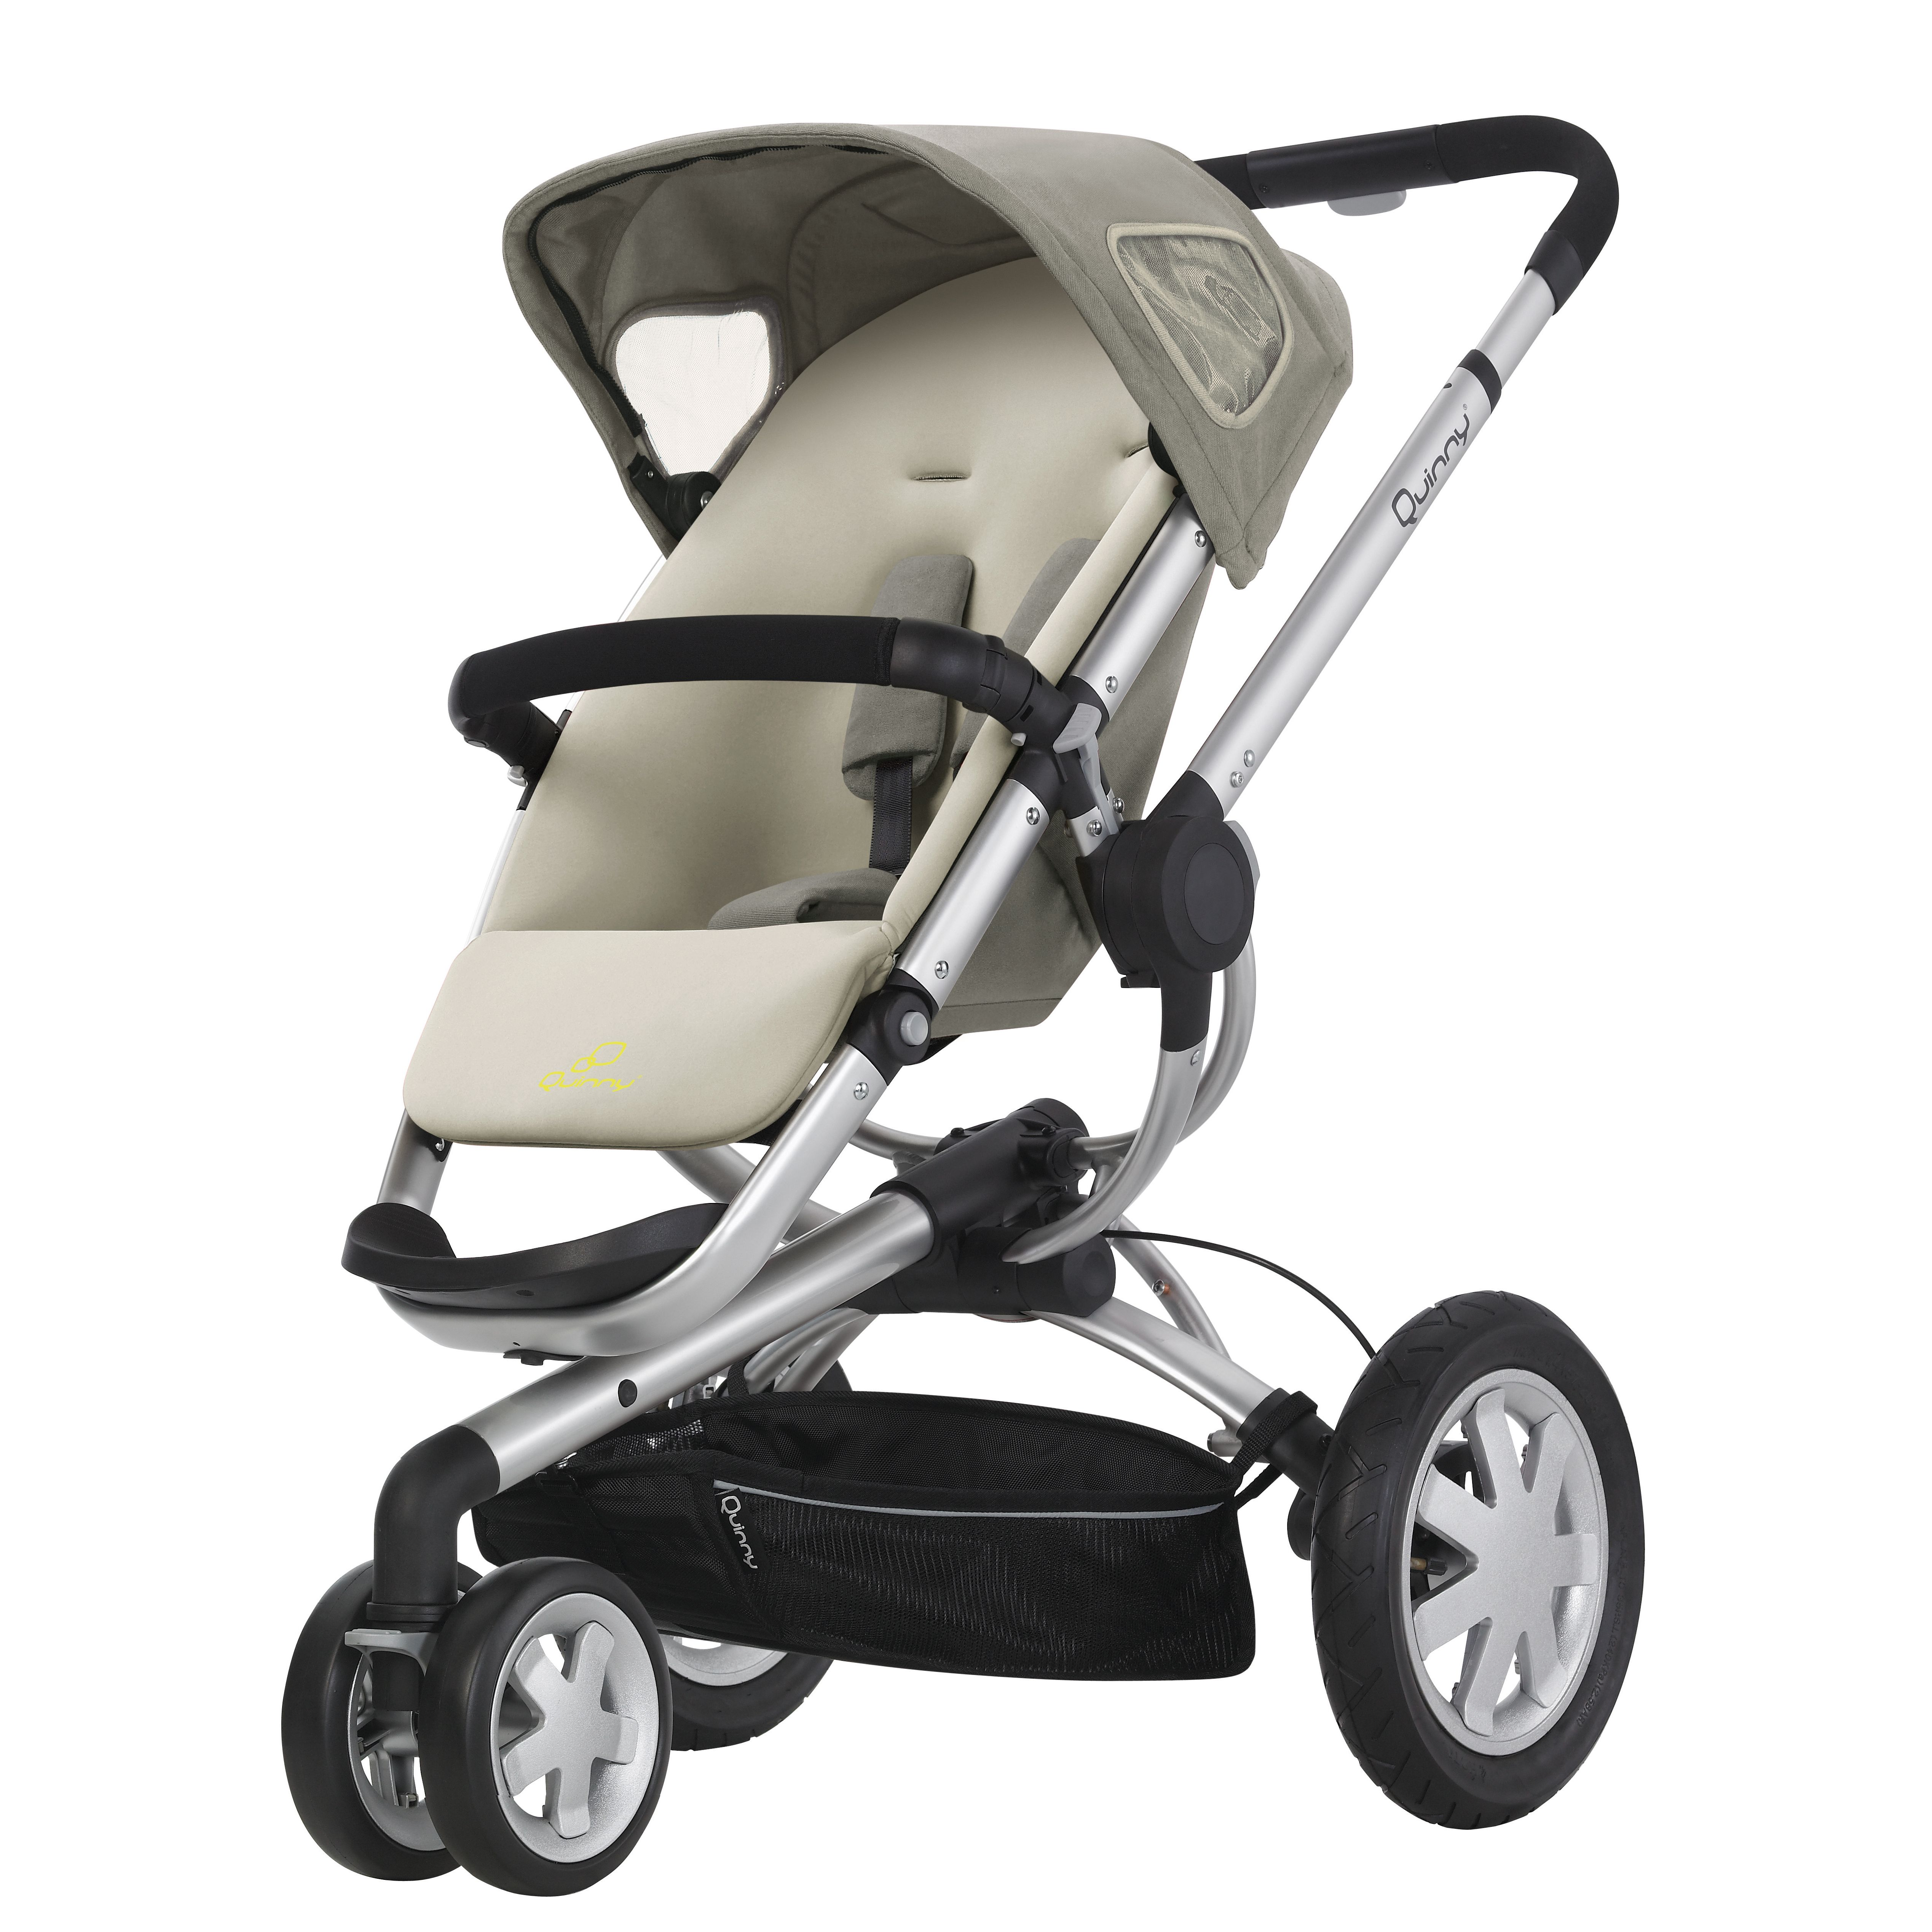 The Quinny Buzz is an innovative and safe stroller set for your baby